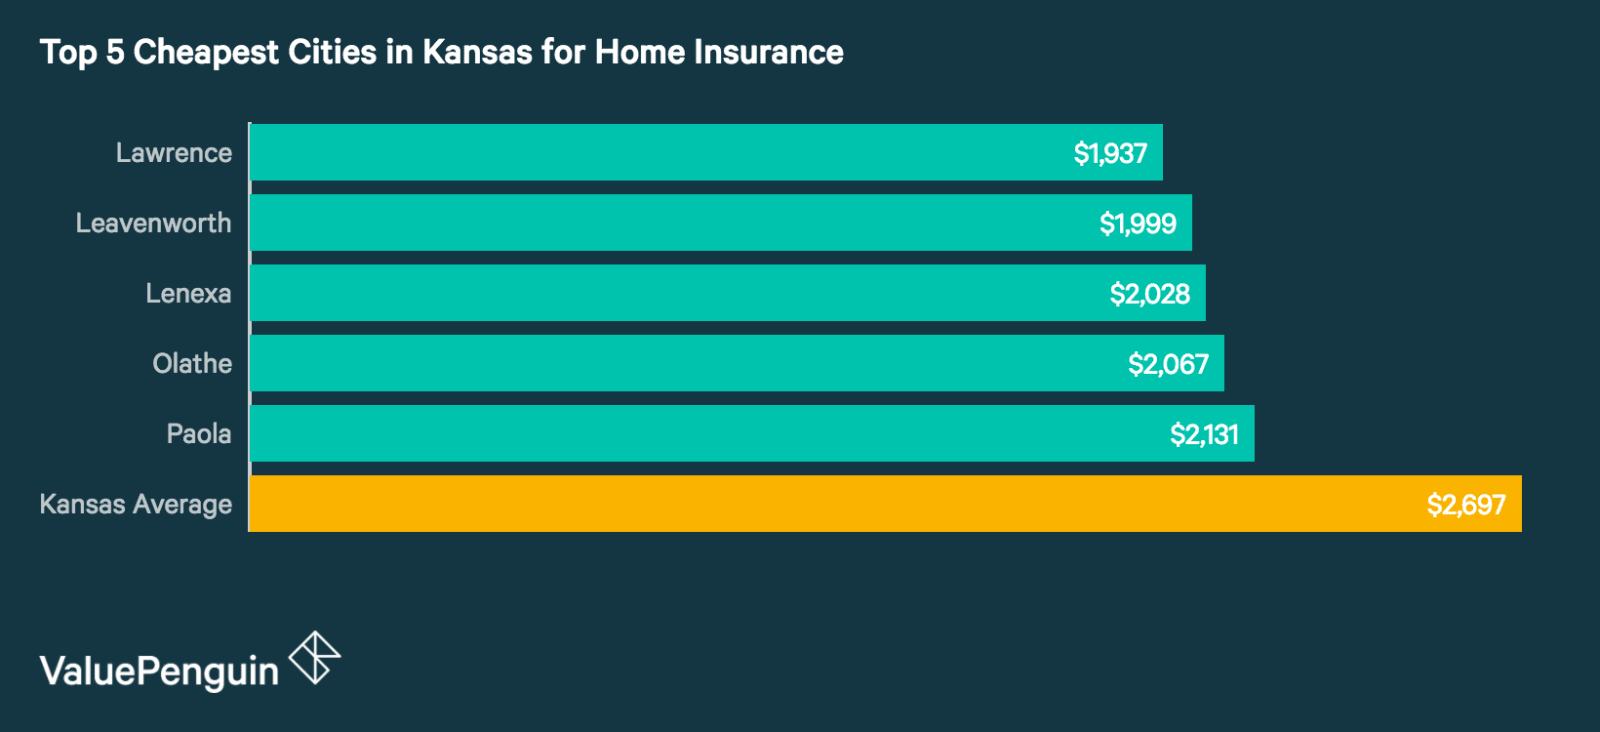 Top 5 Cheapest Cities in Kansas for Homeowners Insurance